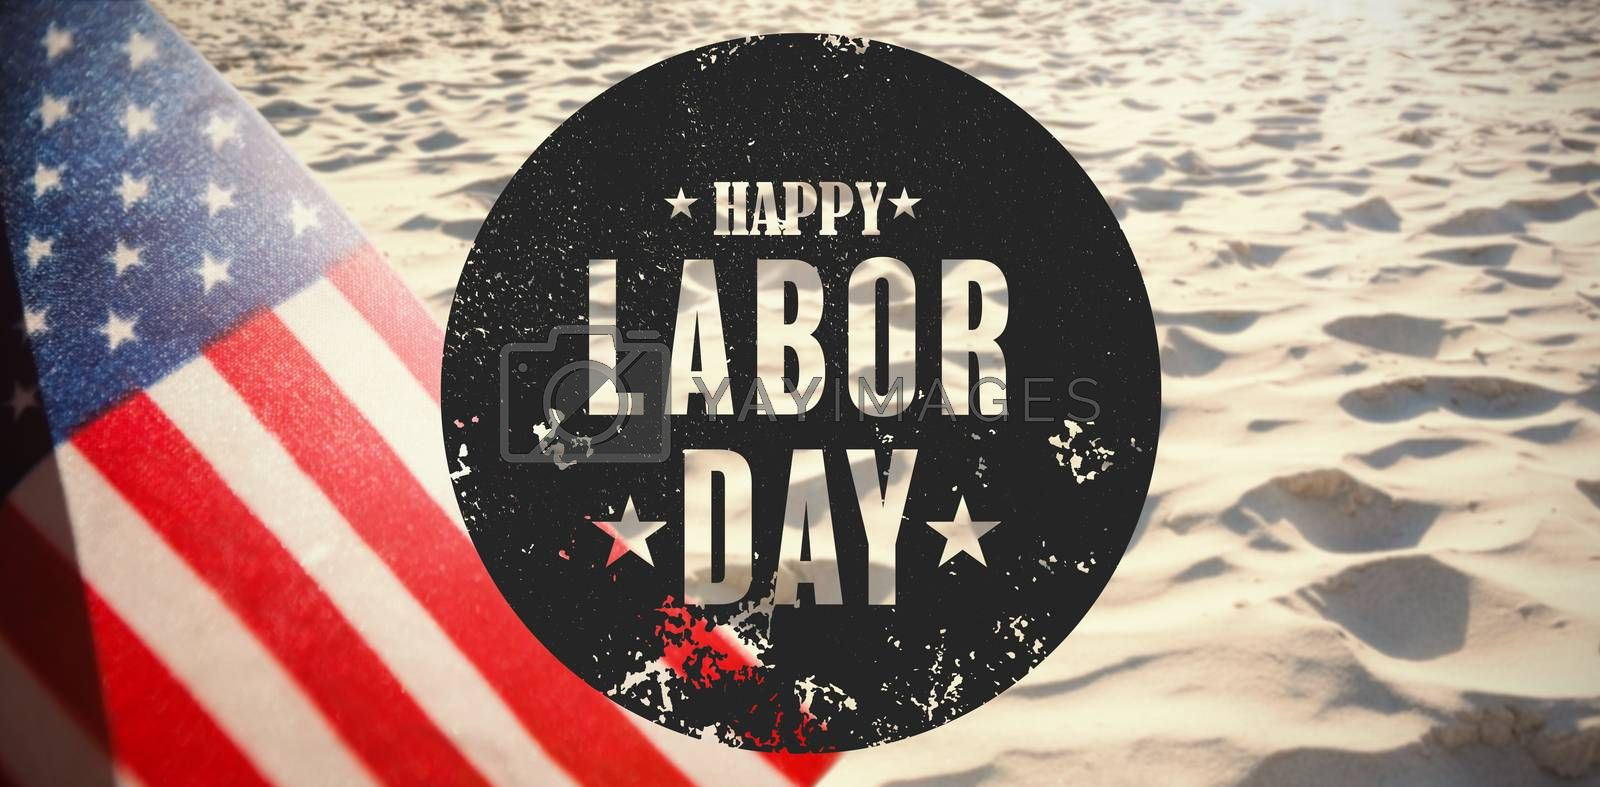 Composite image of digital composite image of happy labor day text poster by Wavebreakmedia